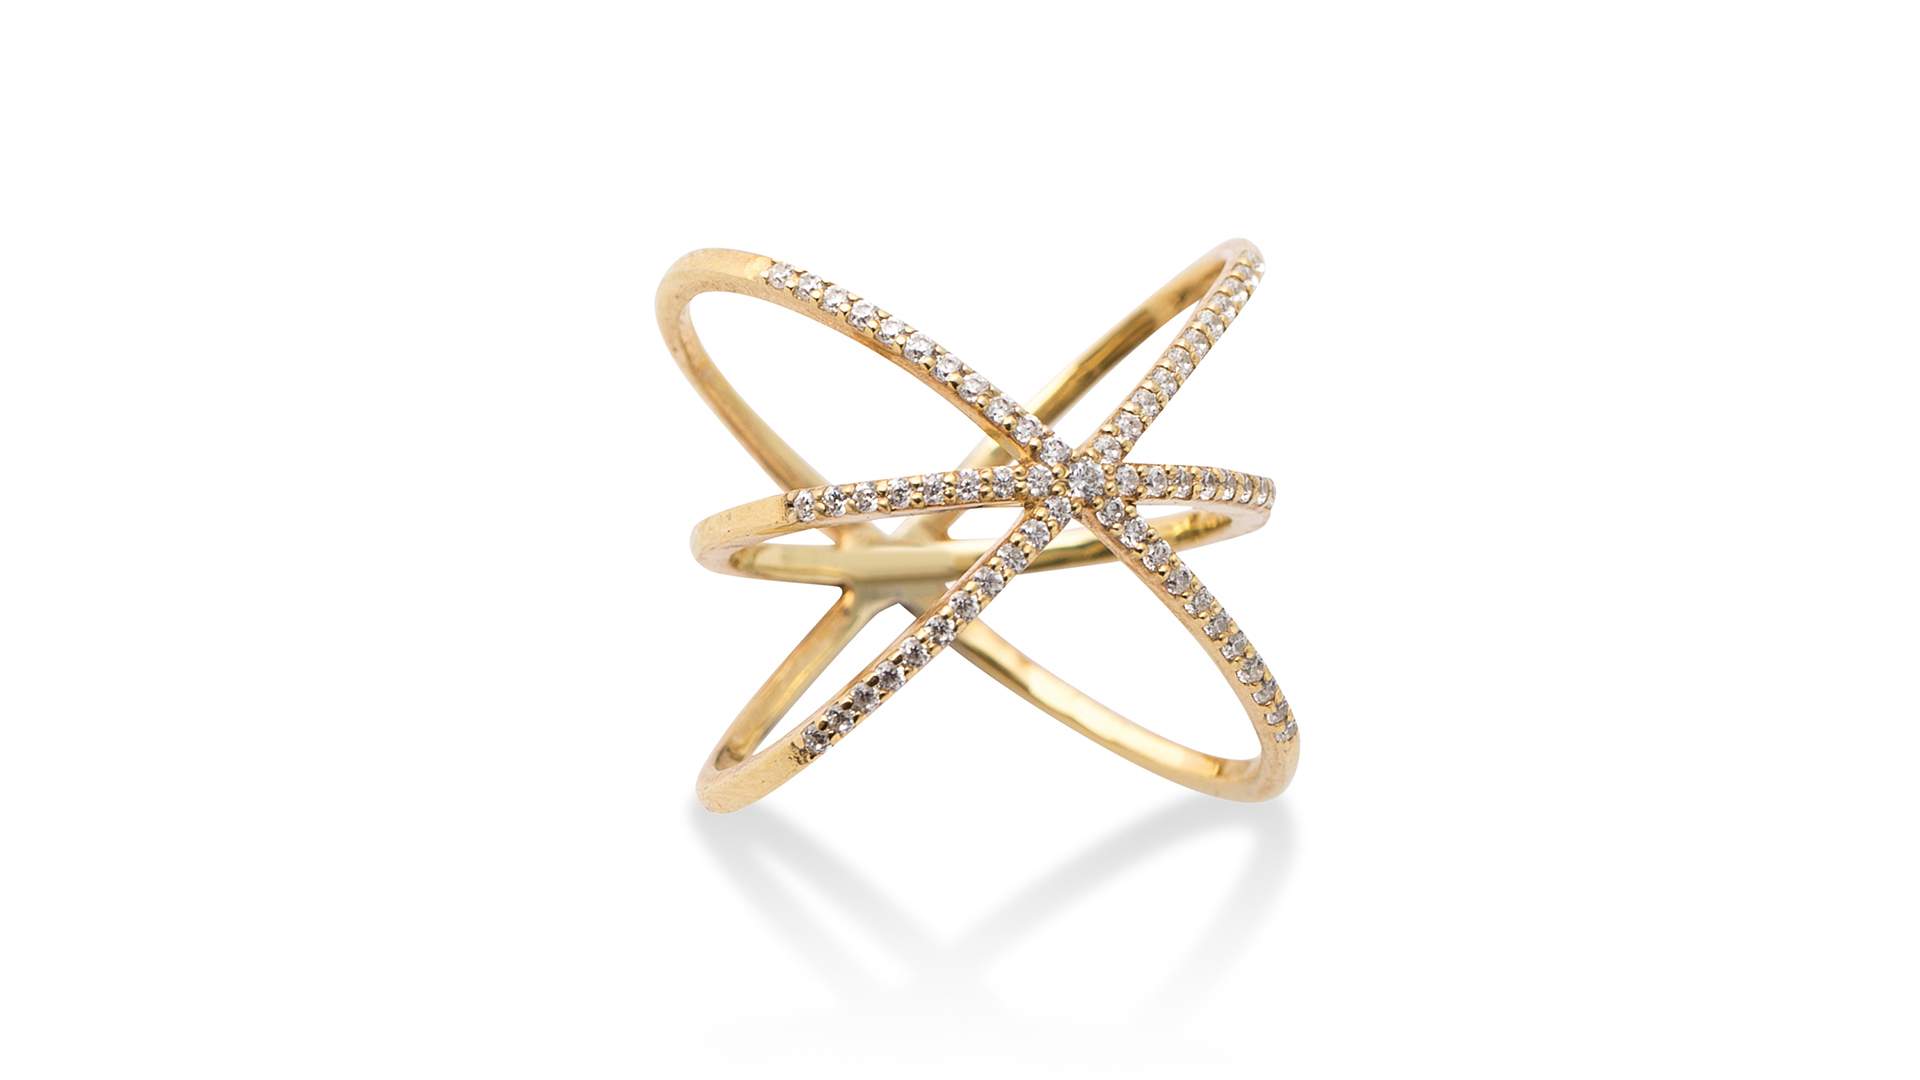 Kriss Kross Diamond Ring by Meher Jewellery on curated-crowd.com